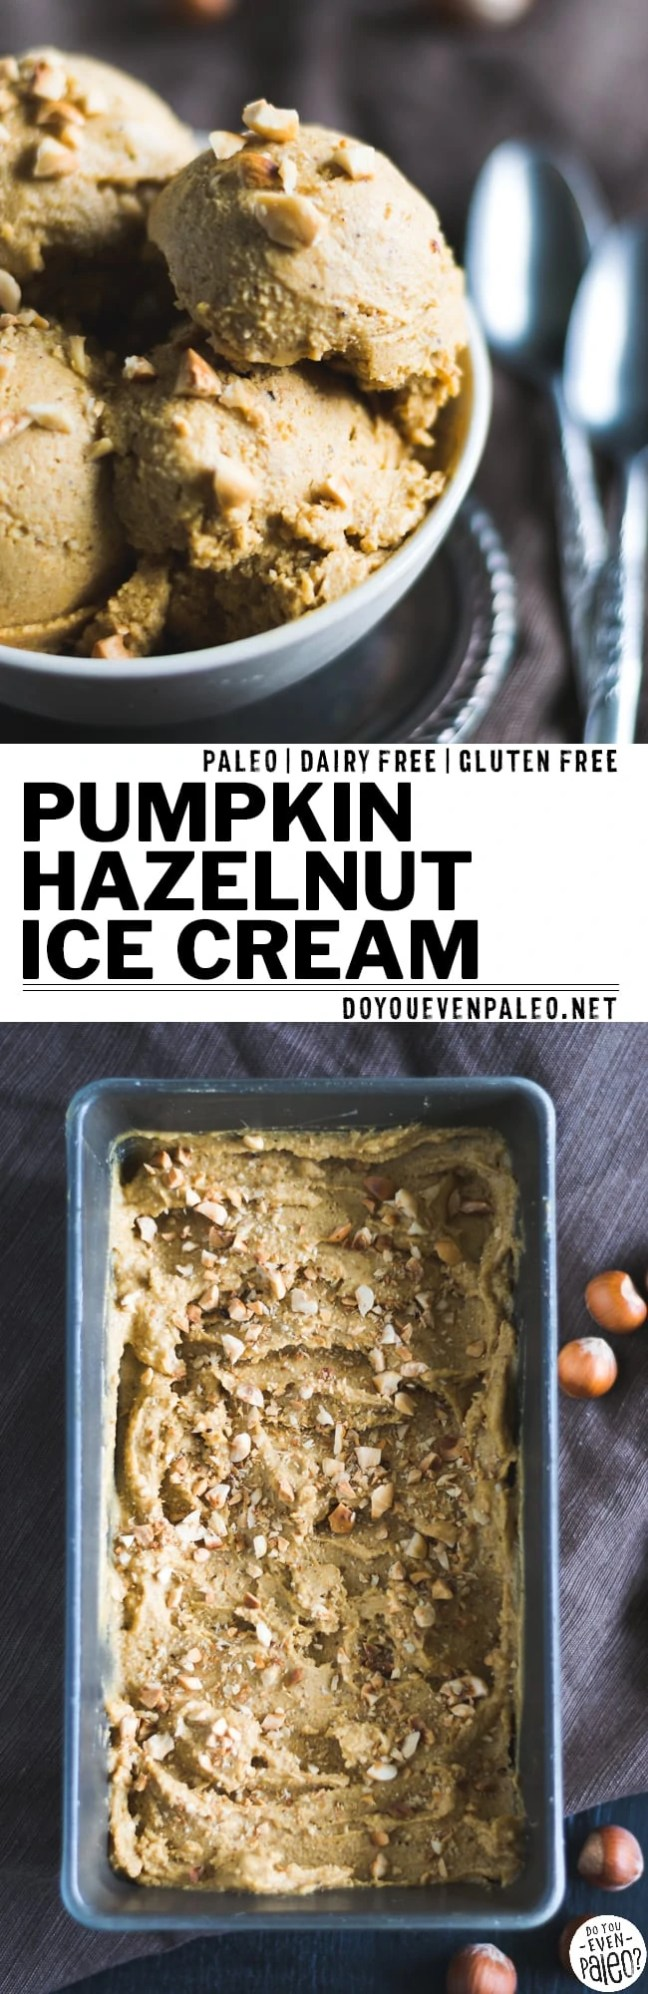 Pumpkin and hazelnut make a stunning pair. Revel in the warm days of fall with this dairy free pumpkin hazelnut ice cream! | DoYouEvenPaleo.net #paleo #glutenfree #dairyfree #pumpkin #doyouevenpaleo